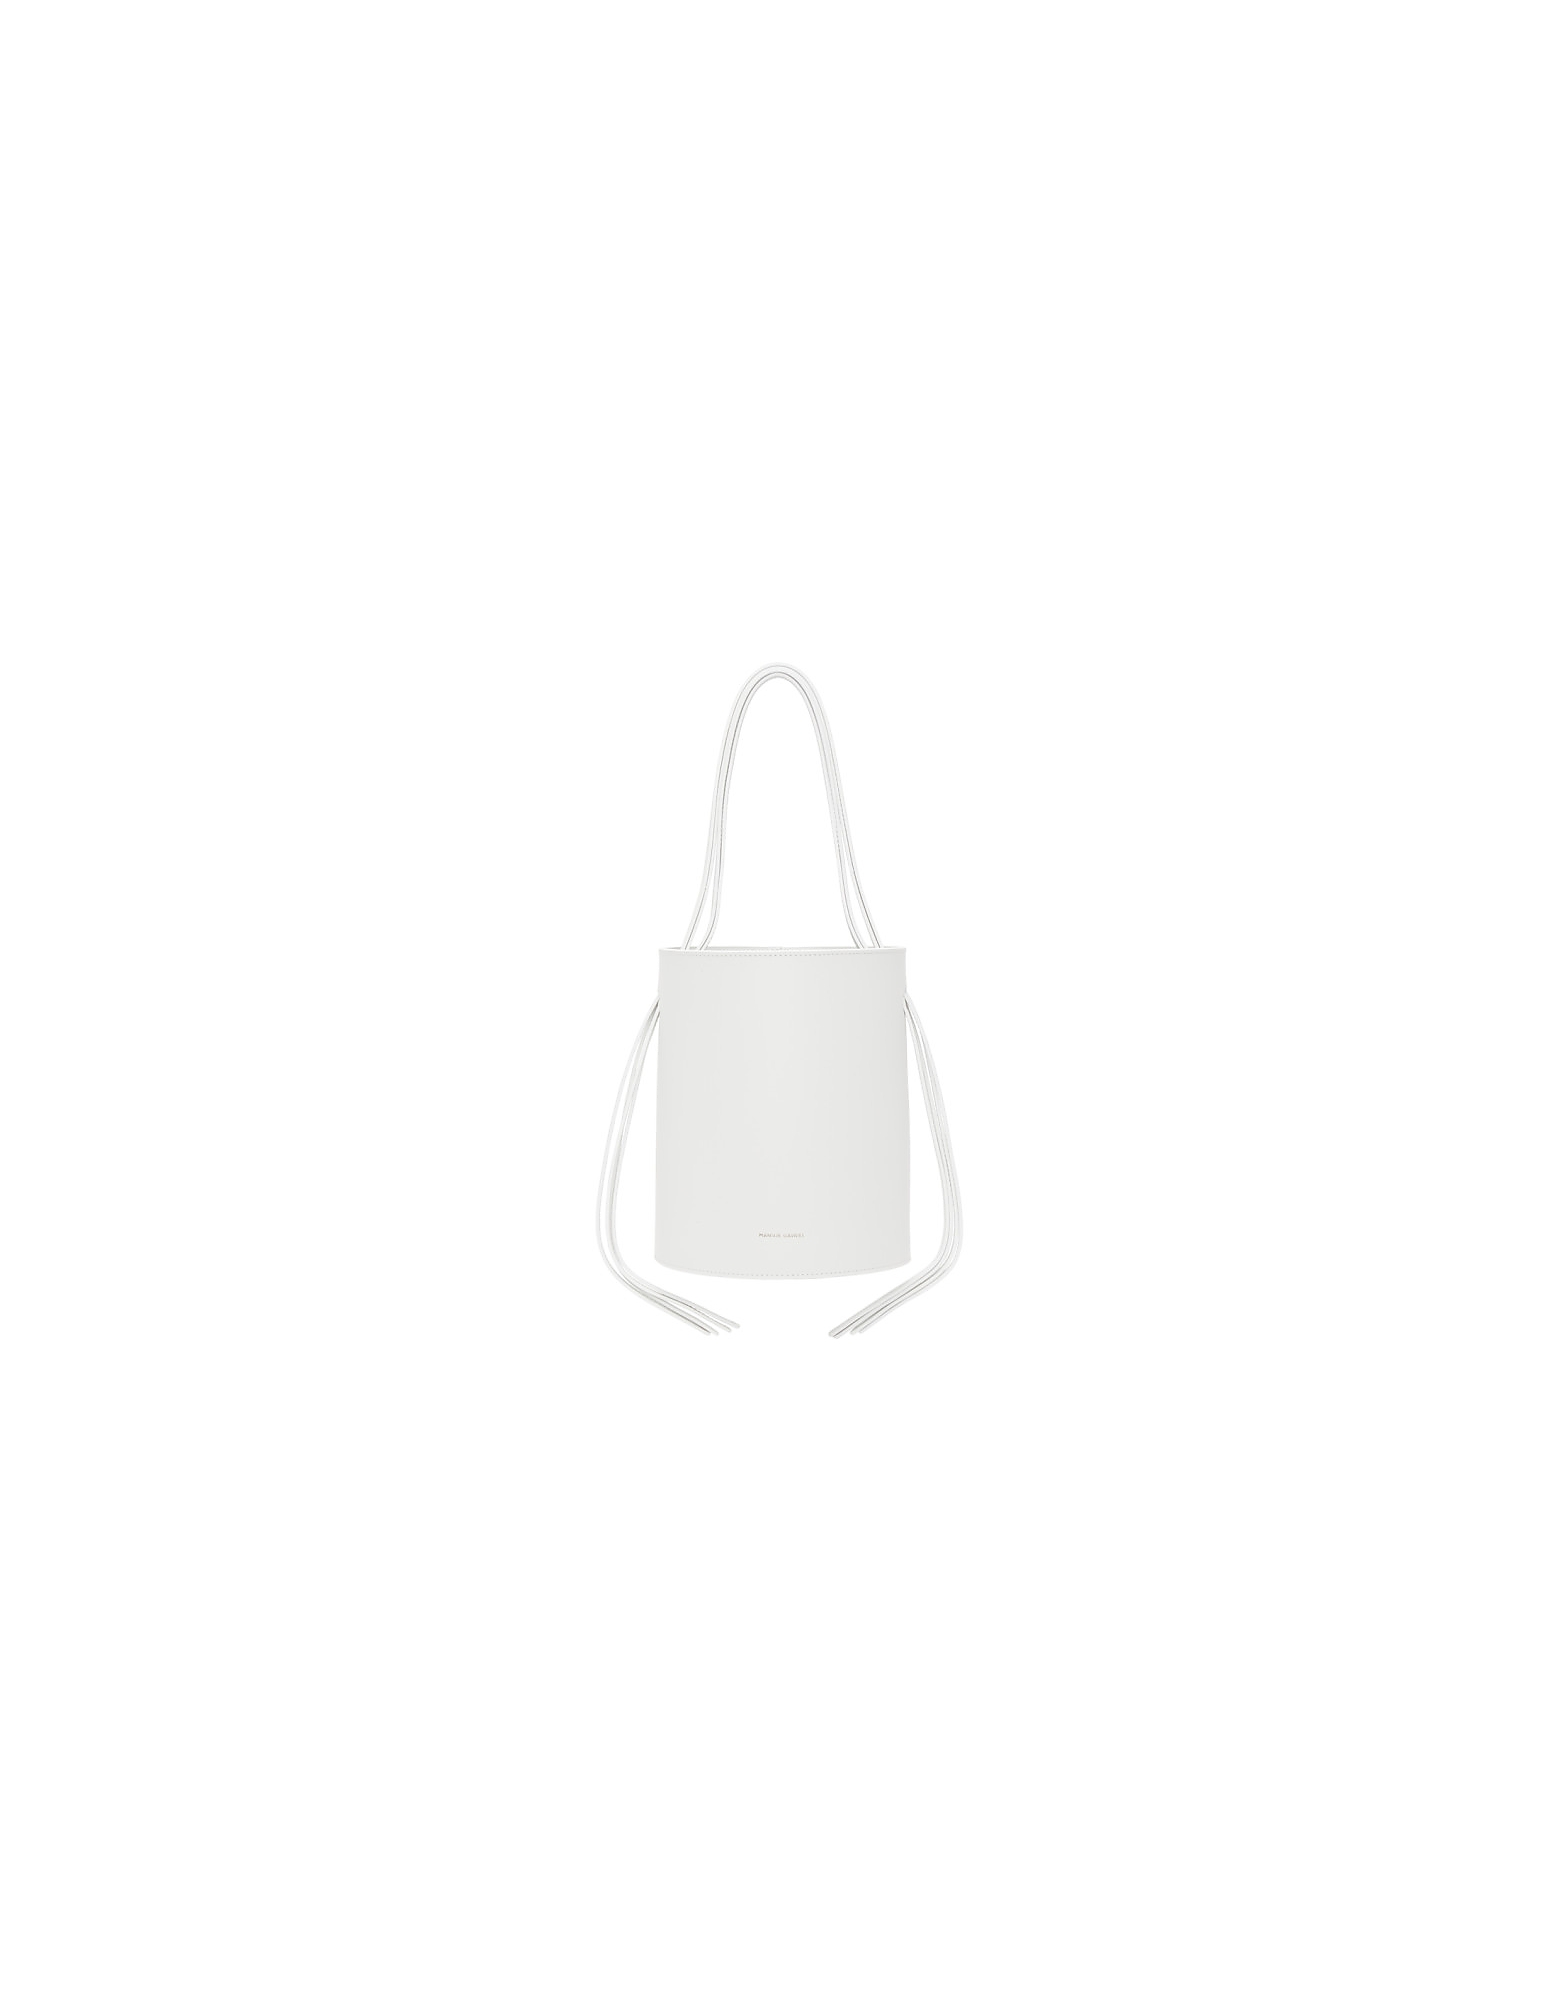 Mansur Gavriel Designer Handbags, White Fringe Bucket Bag